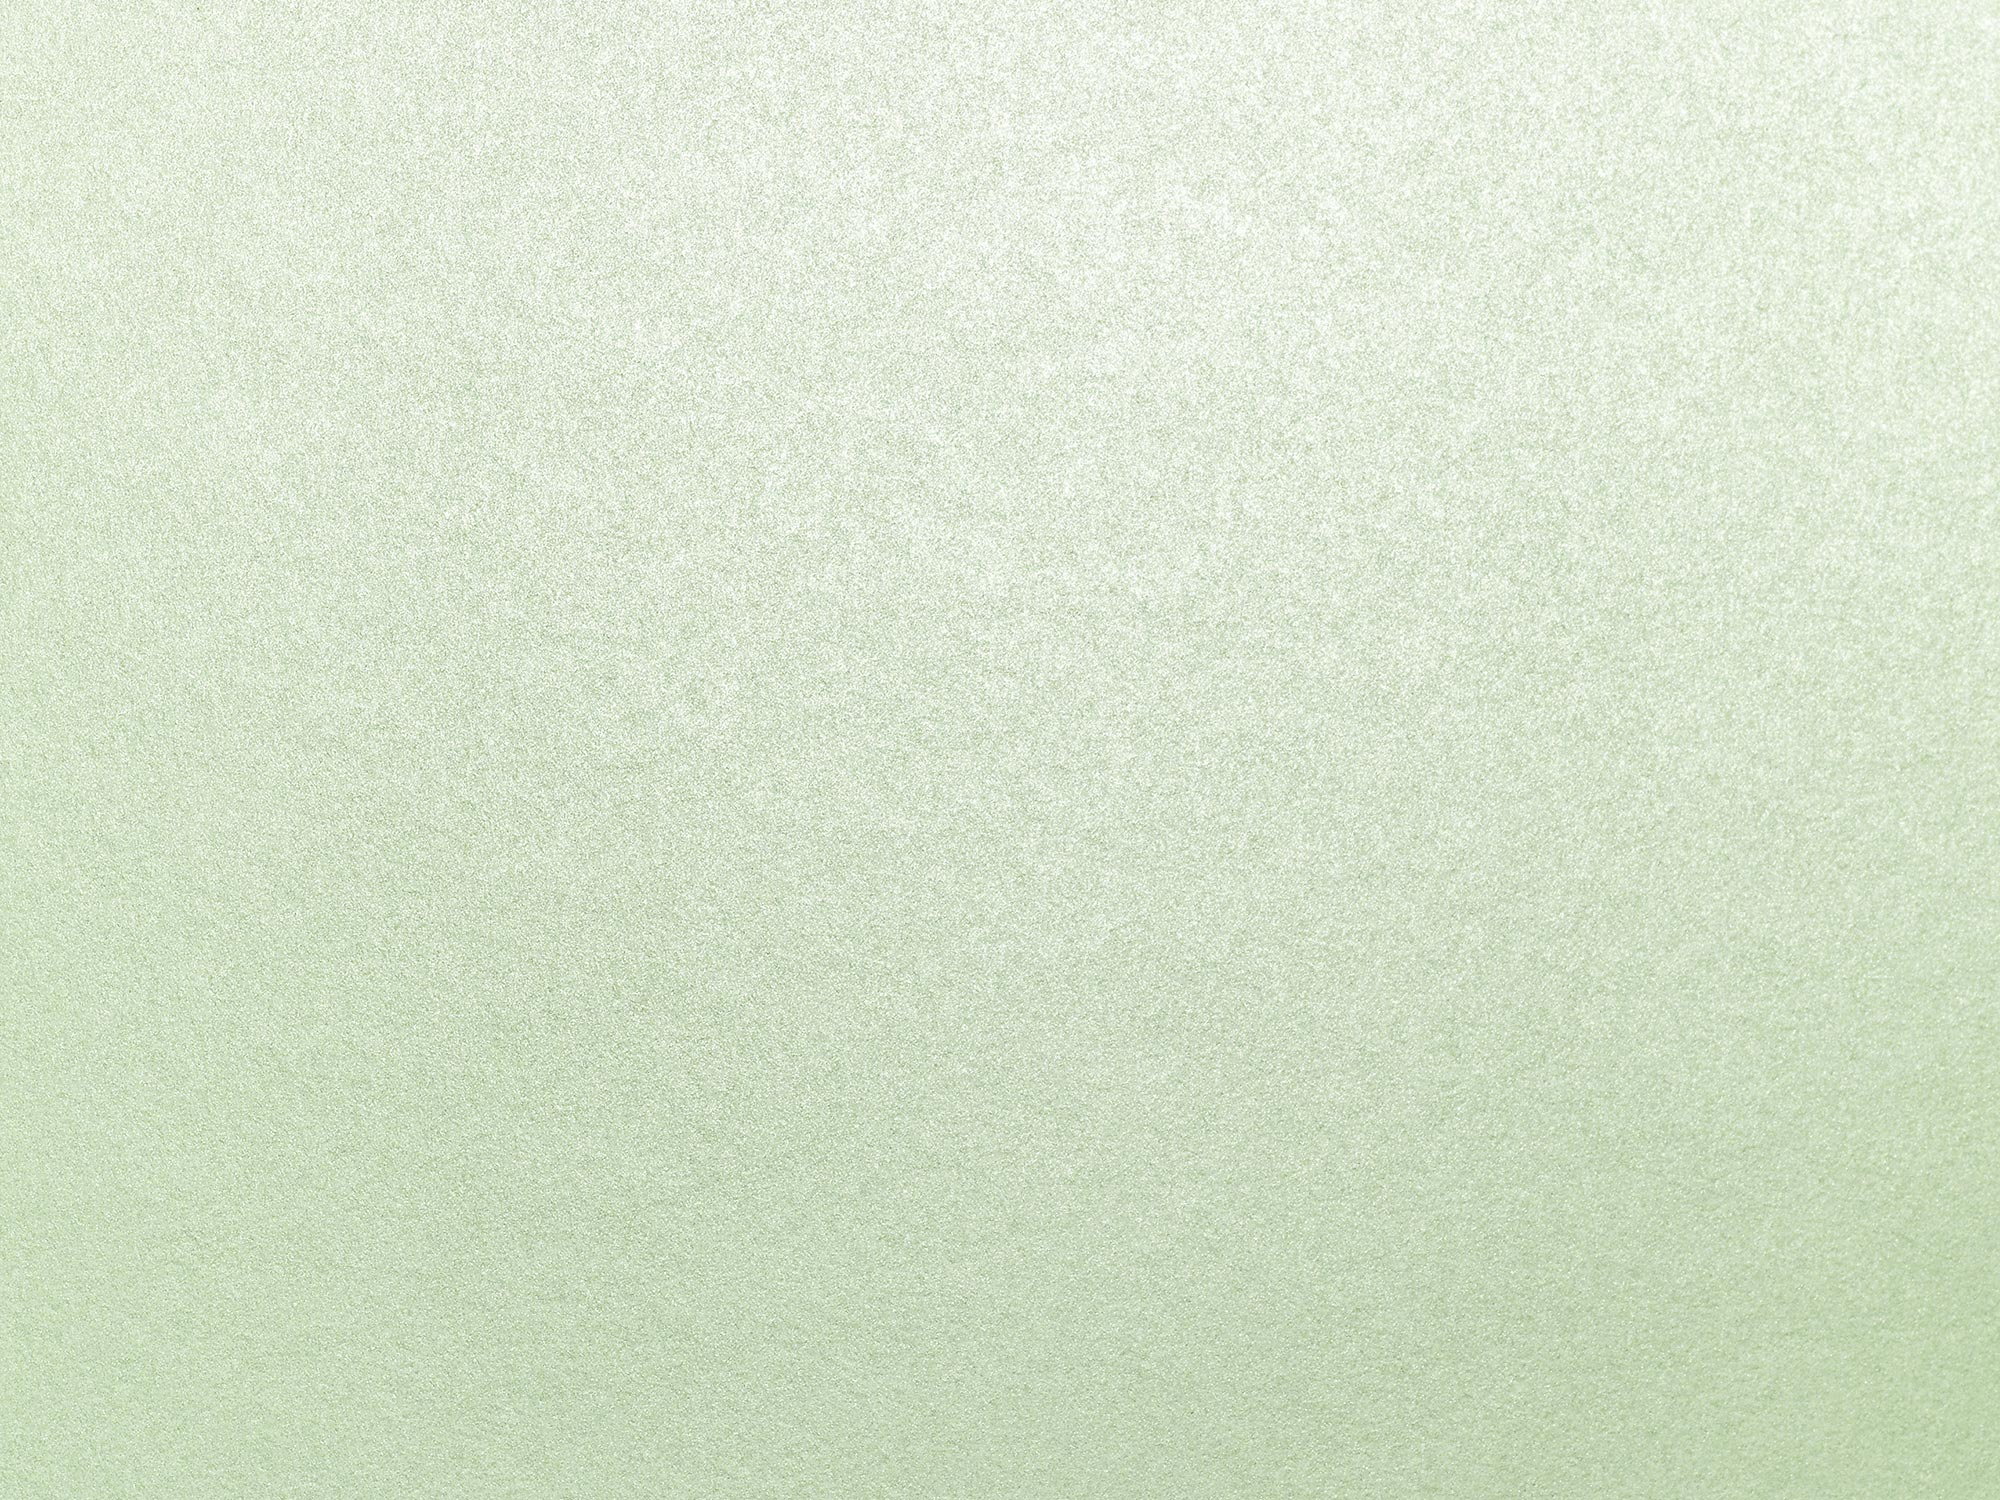 Pearlescent - Mint Green 120gsm